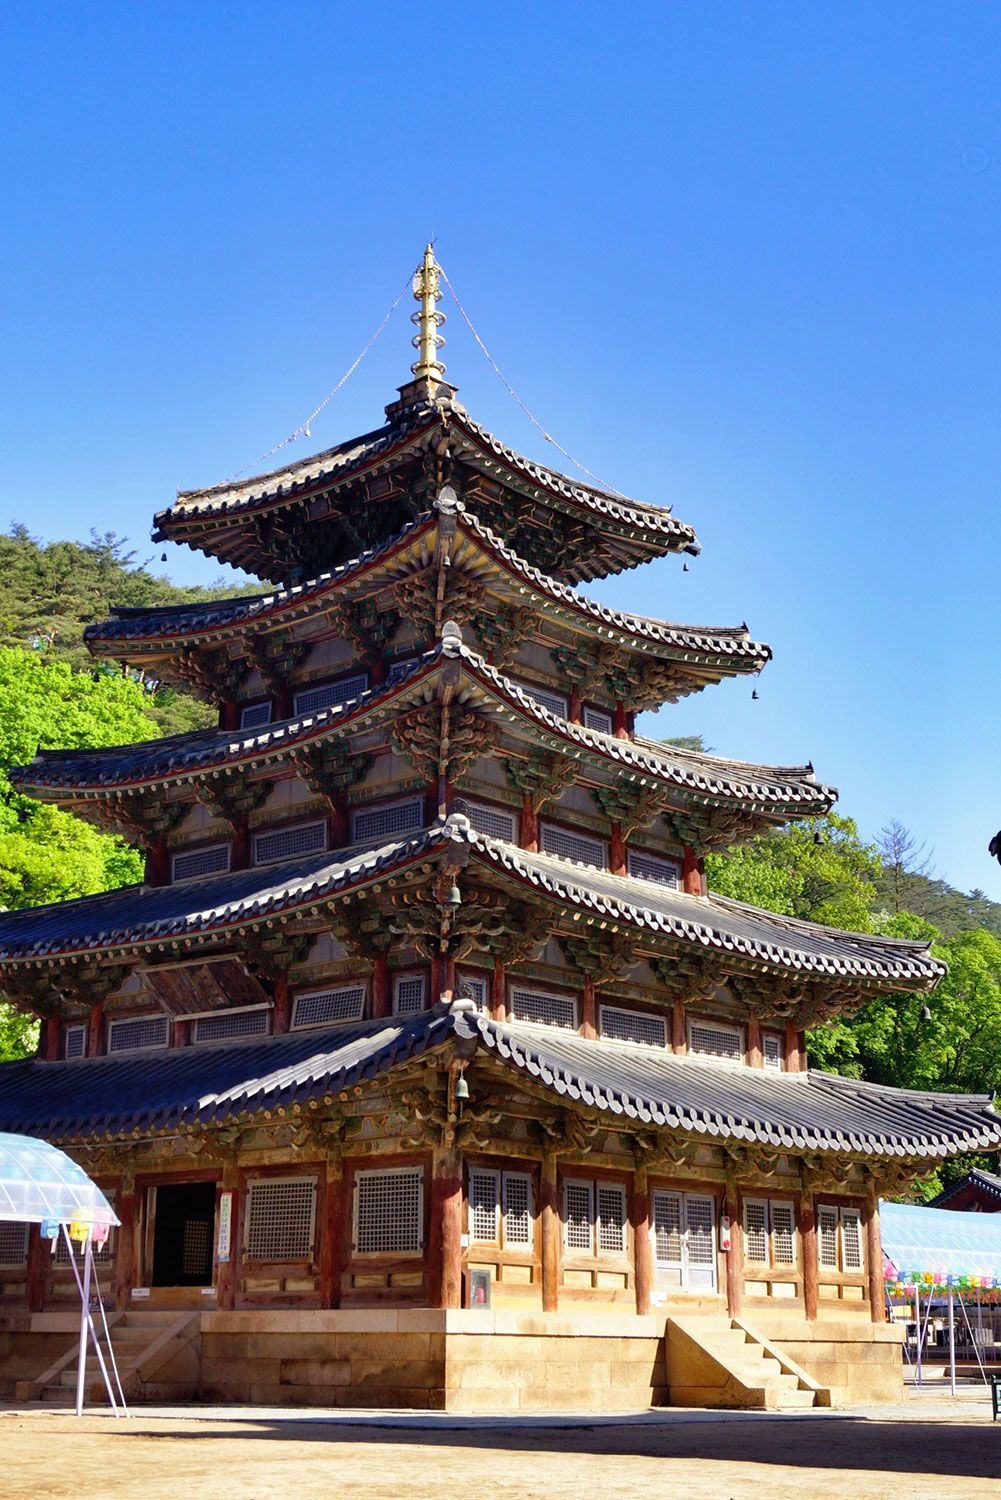 Palsangjeon is believed to be the oldest and tallest pagoda found in Korea. It is one of only 2 wooden pagodas in the country